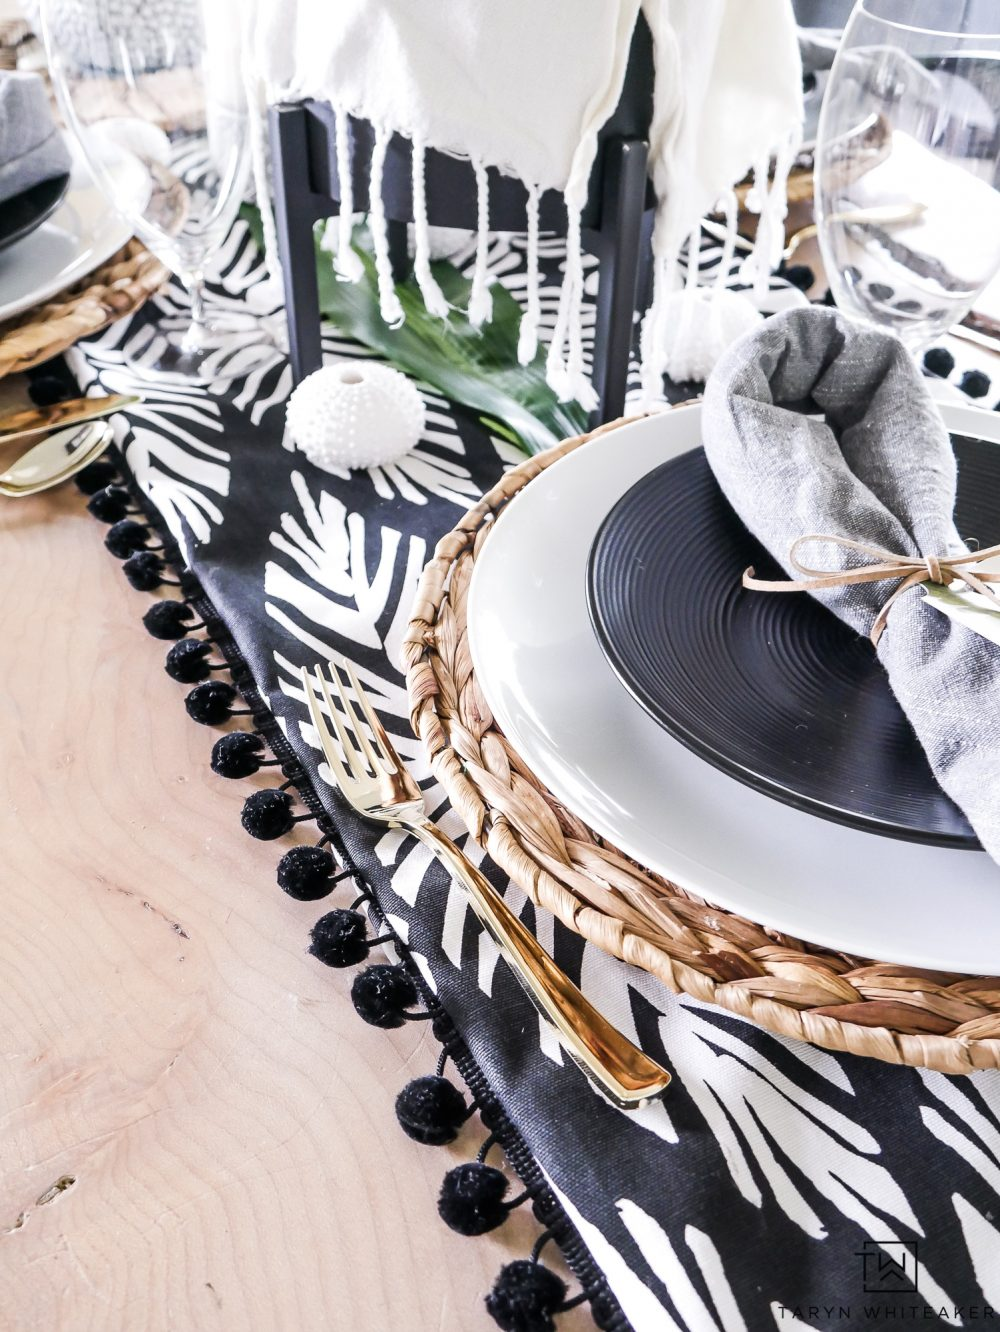 A modern approach to tropical dinner party decor! This black and white tropical table runner with pom pom trim is everything. Love all the coastal elements worked into this